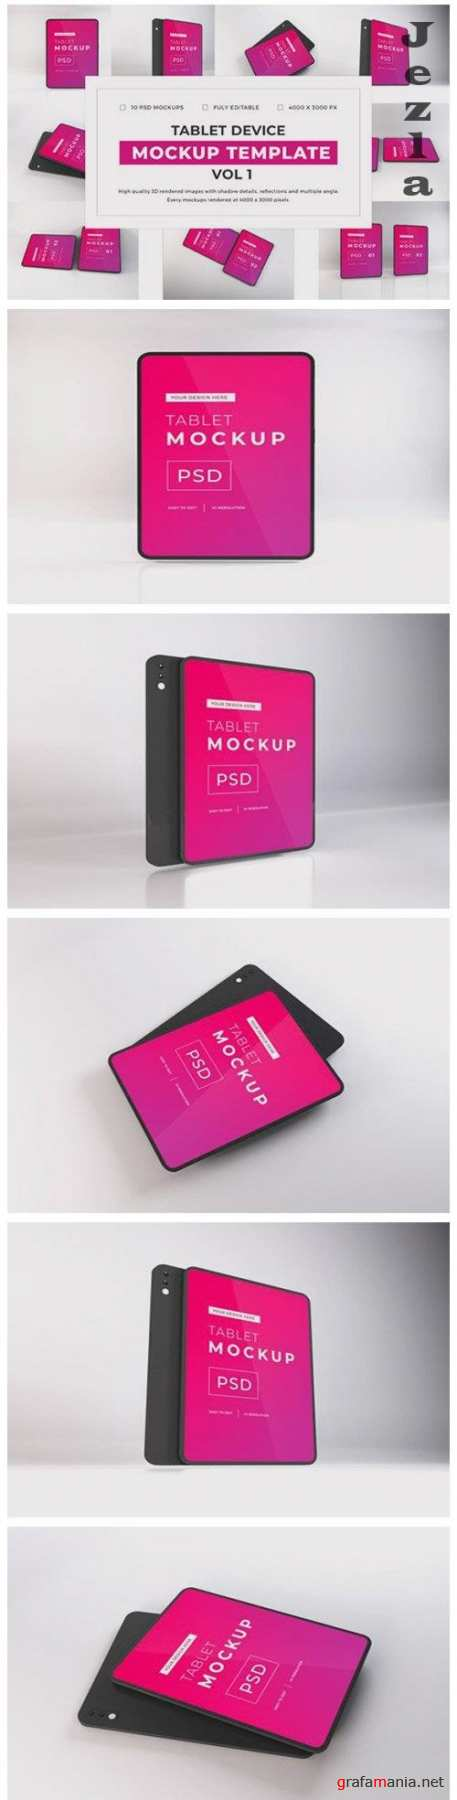 Apple iPad Tablet Device Mockup Template Bundle Vol 1 - 1052918